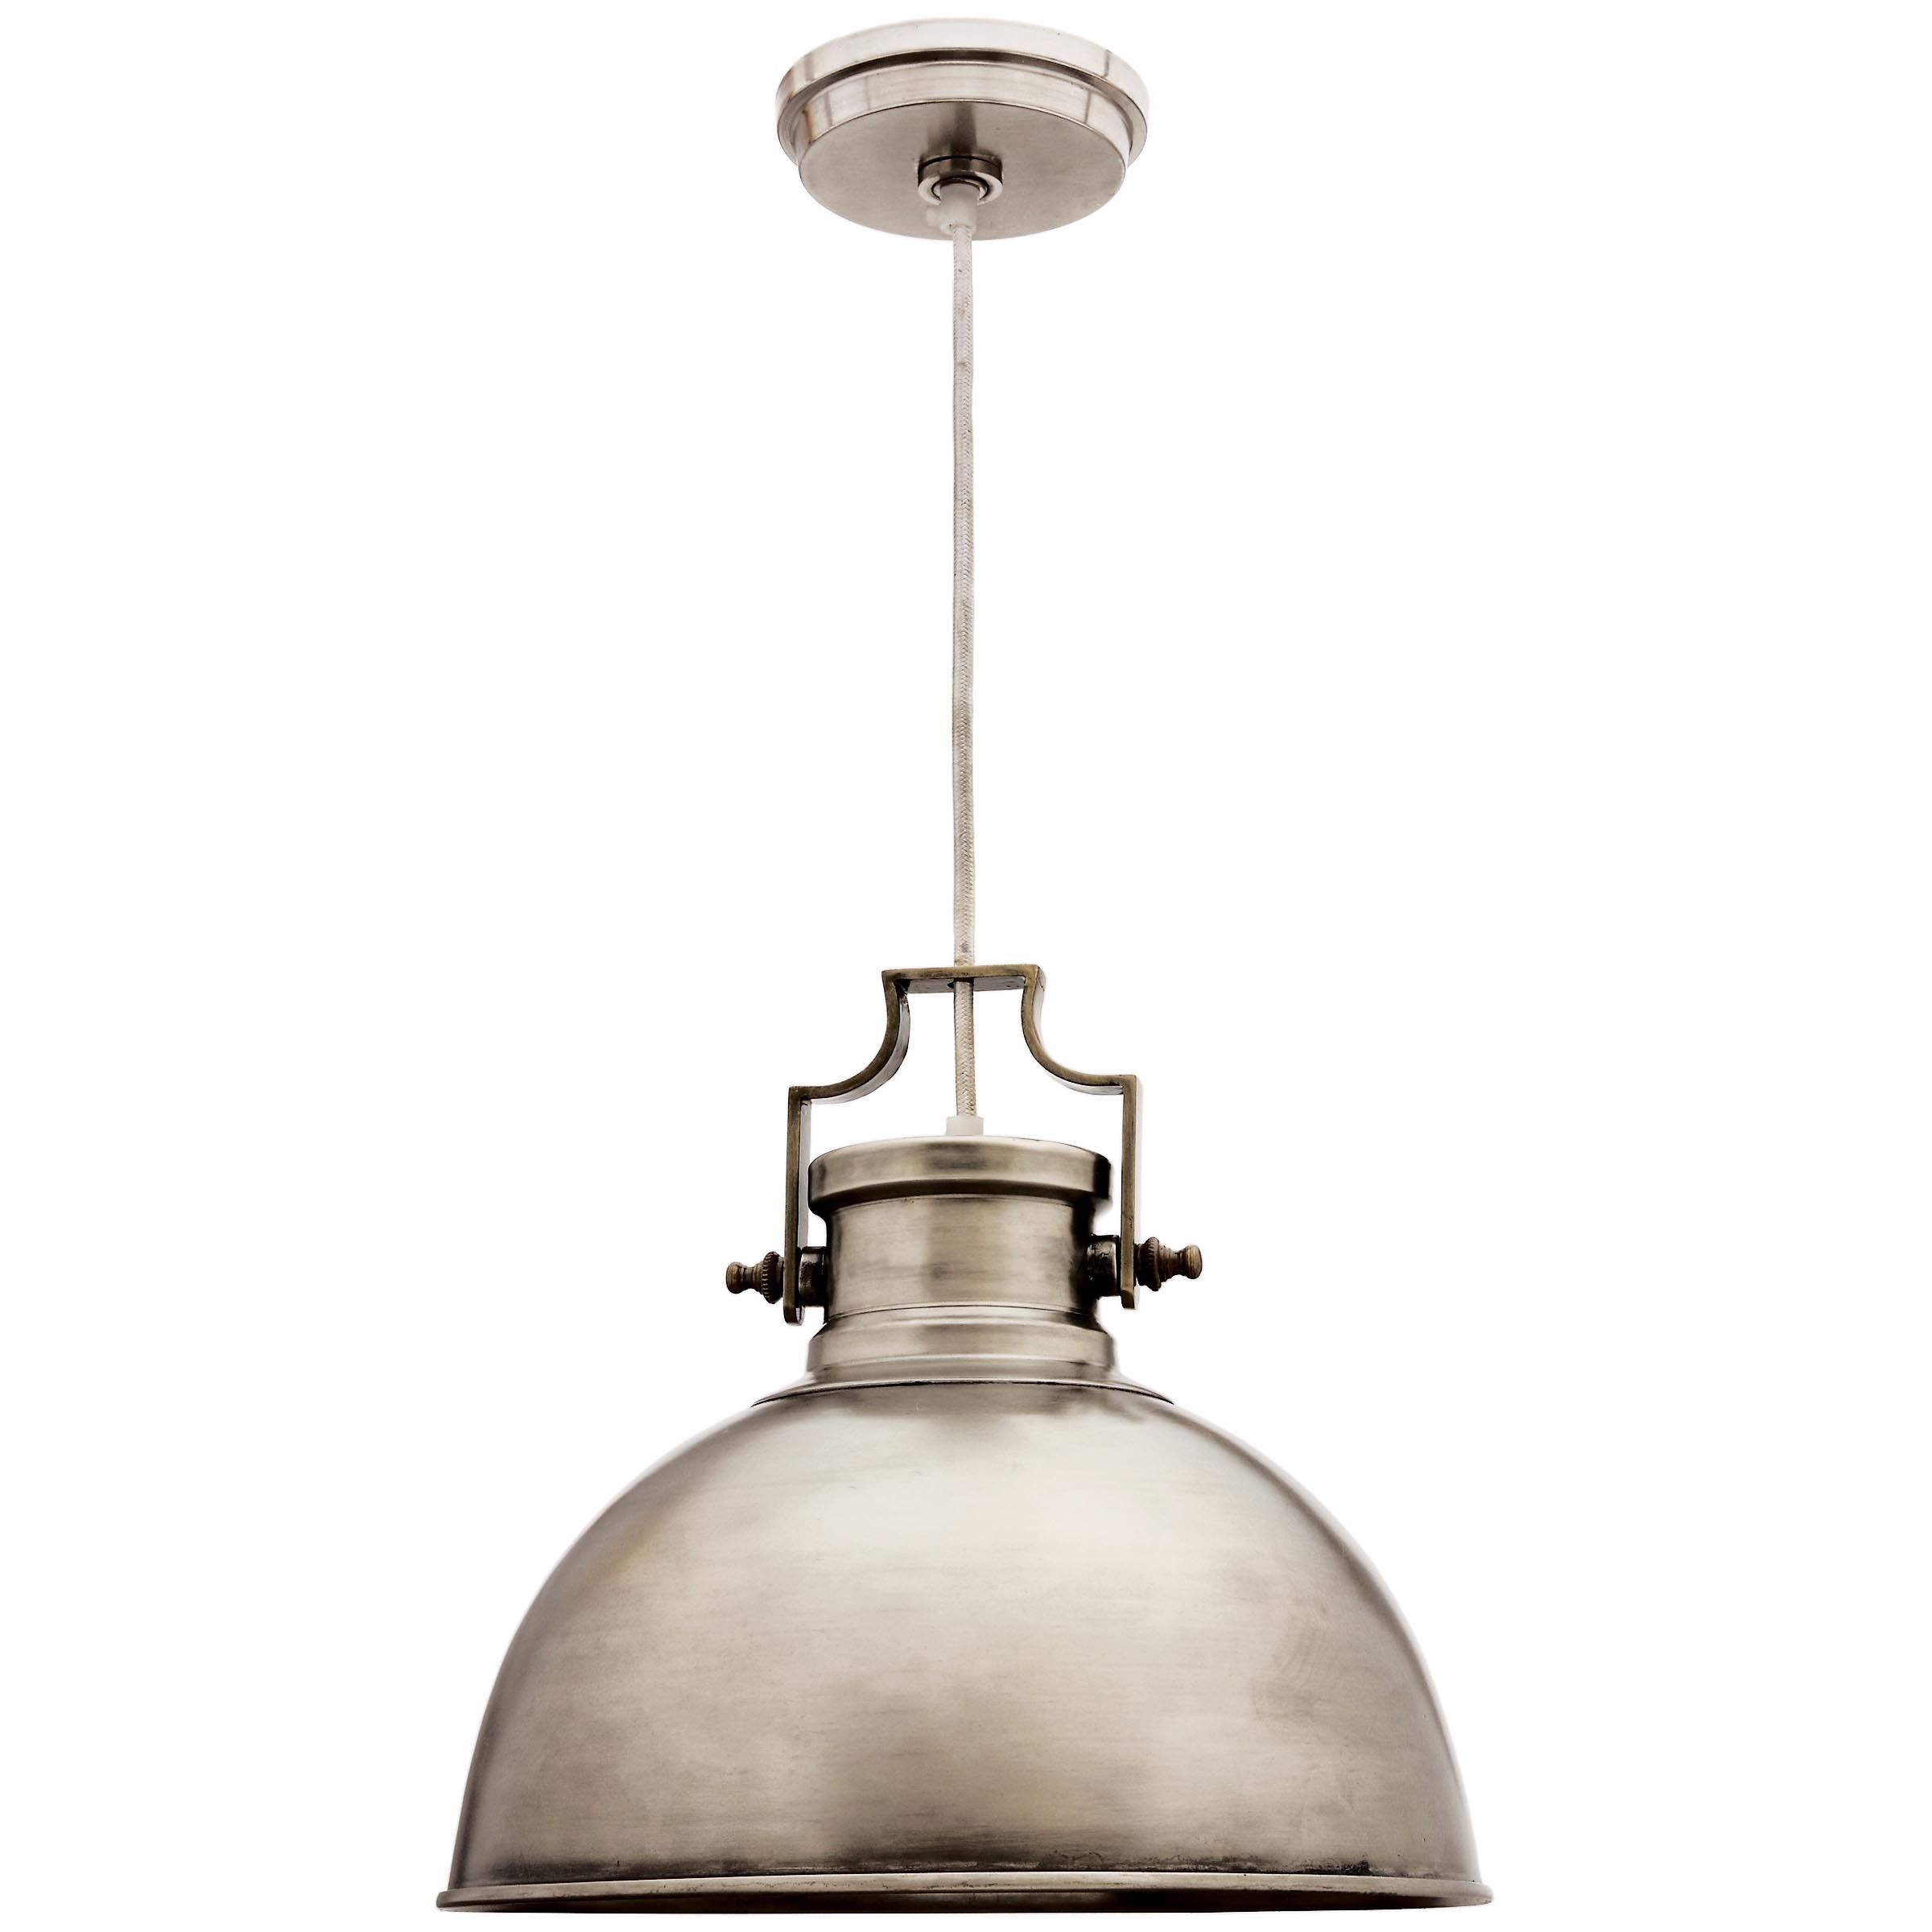 Nautically Inspired, Camden Is A Stunningly Designed Pendant Inside Mueller 1 Light Single Dome Pendants (View 20 of 30)